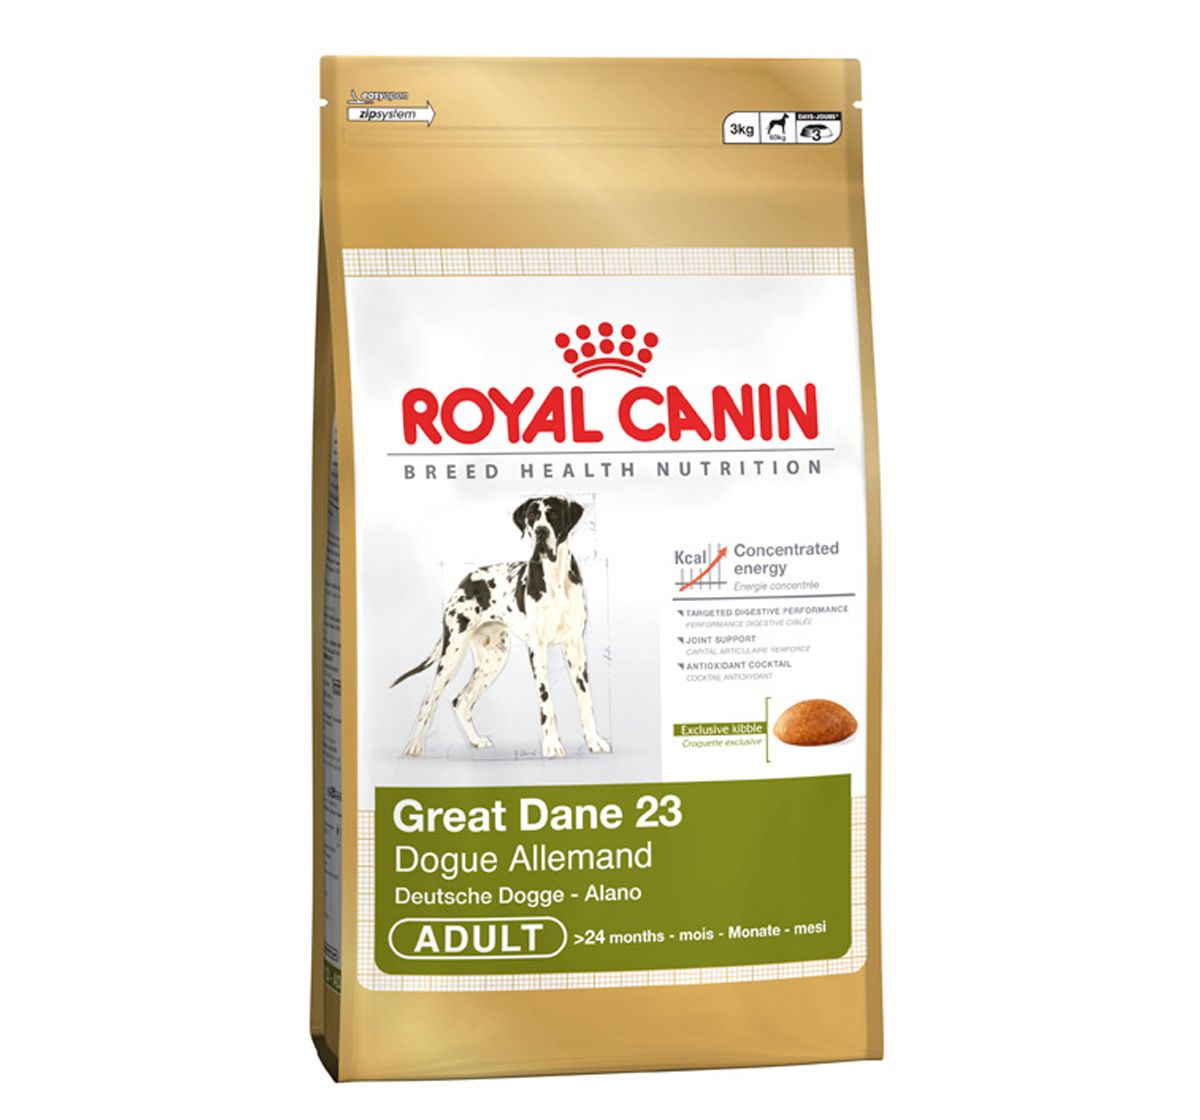 Royal Canin Great Dane Adult 3 Kg Con Imagenes Gran Danes